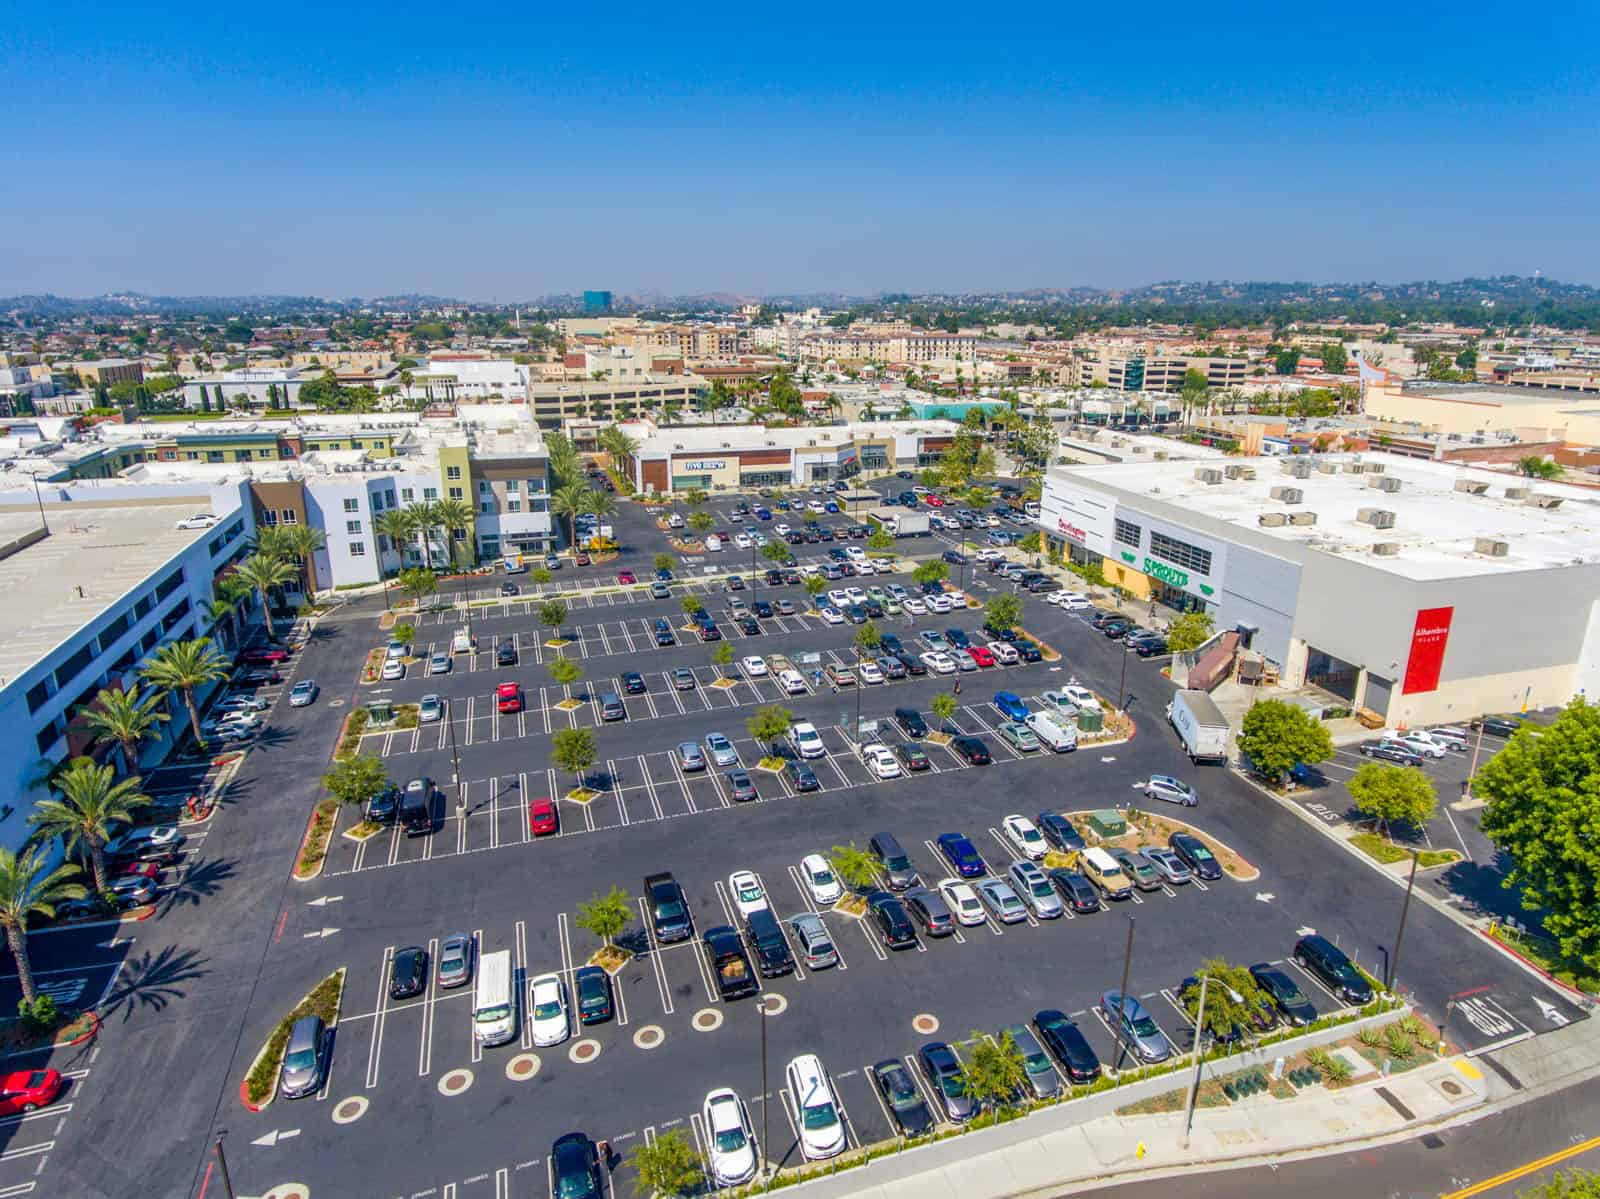 aerial drone photo of shopping plaza in California